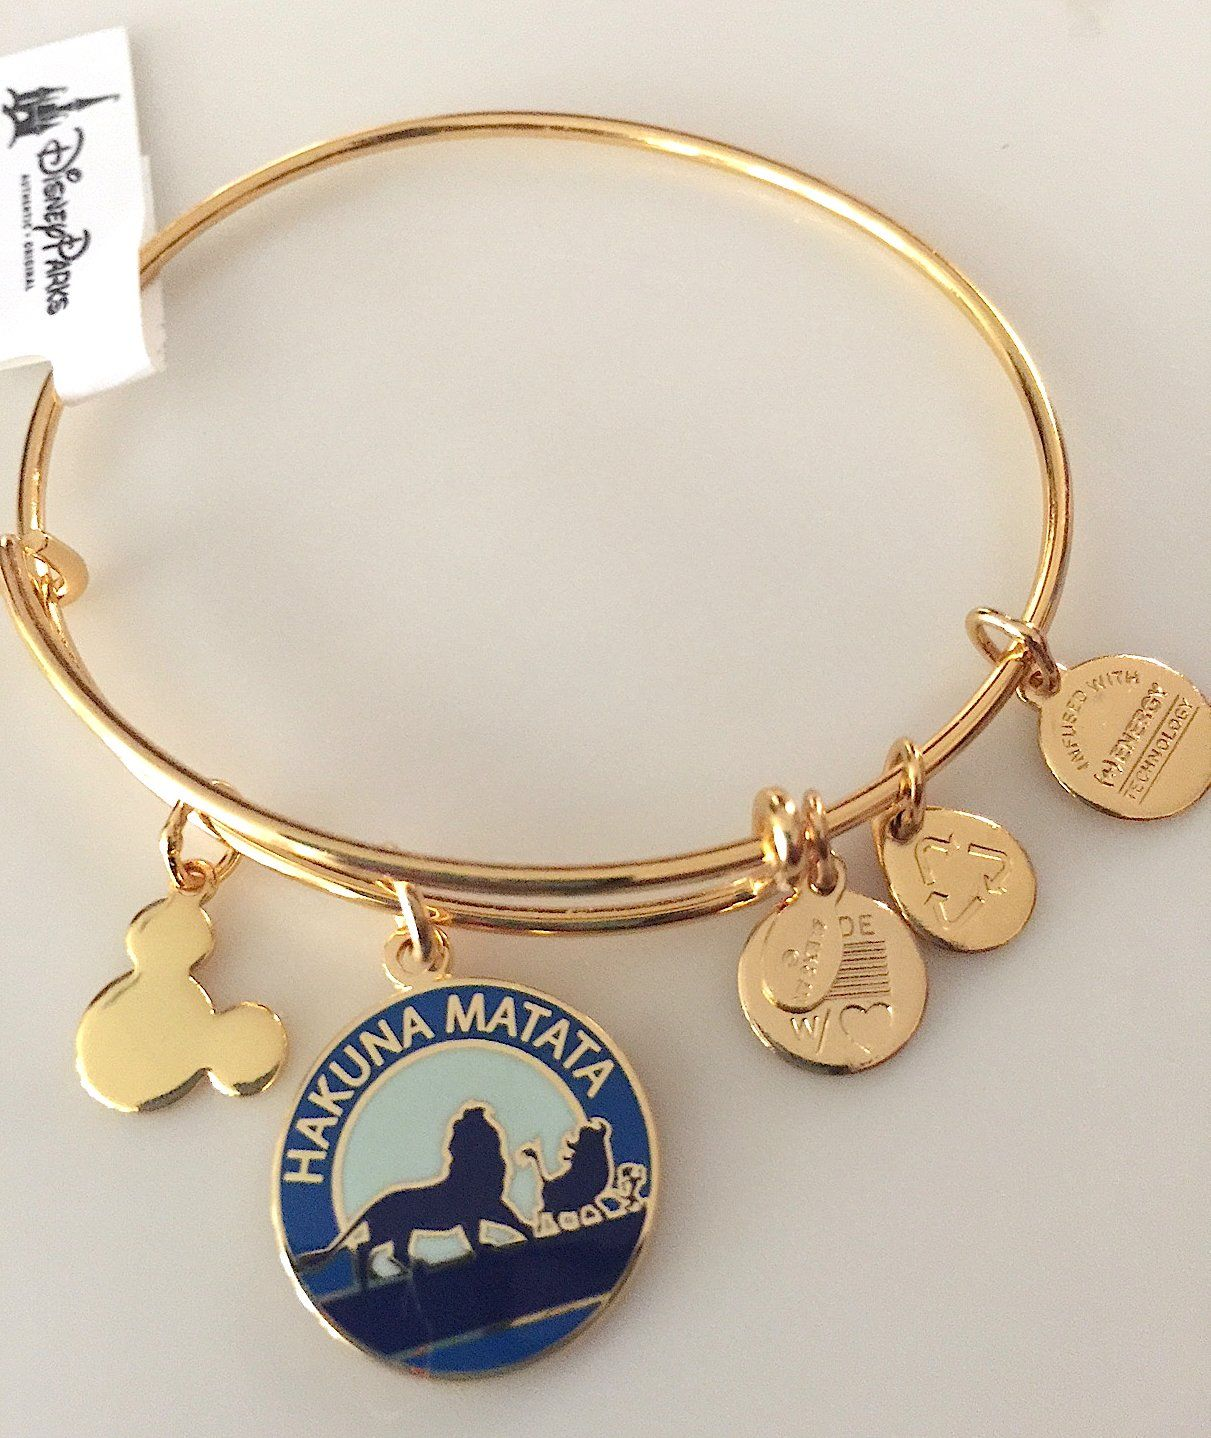 lighthouse com dp alex society design bangles bangle and bracelets lymphoma by leukemia charity bracelet gold jewelry rafaelian amazon ani